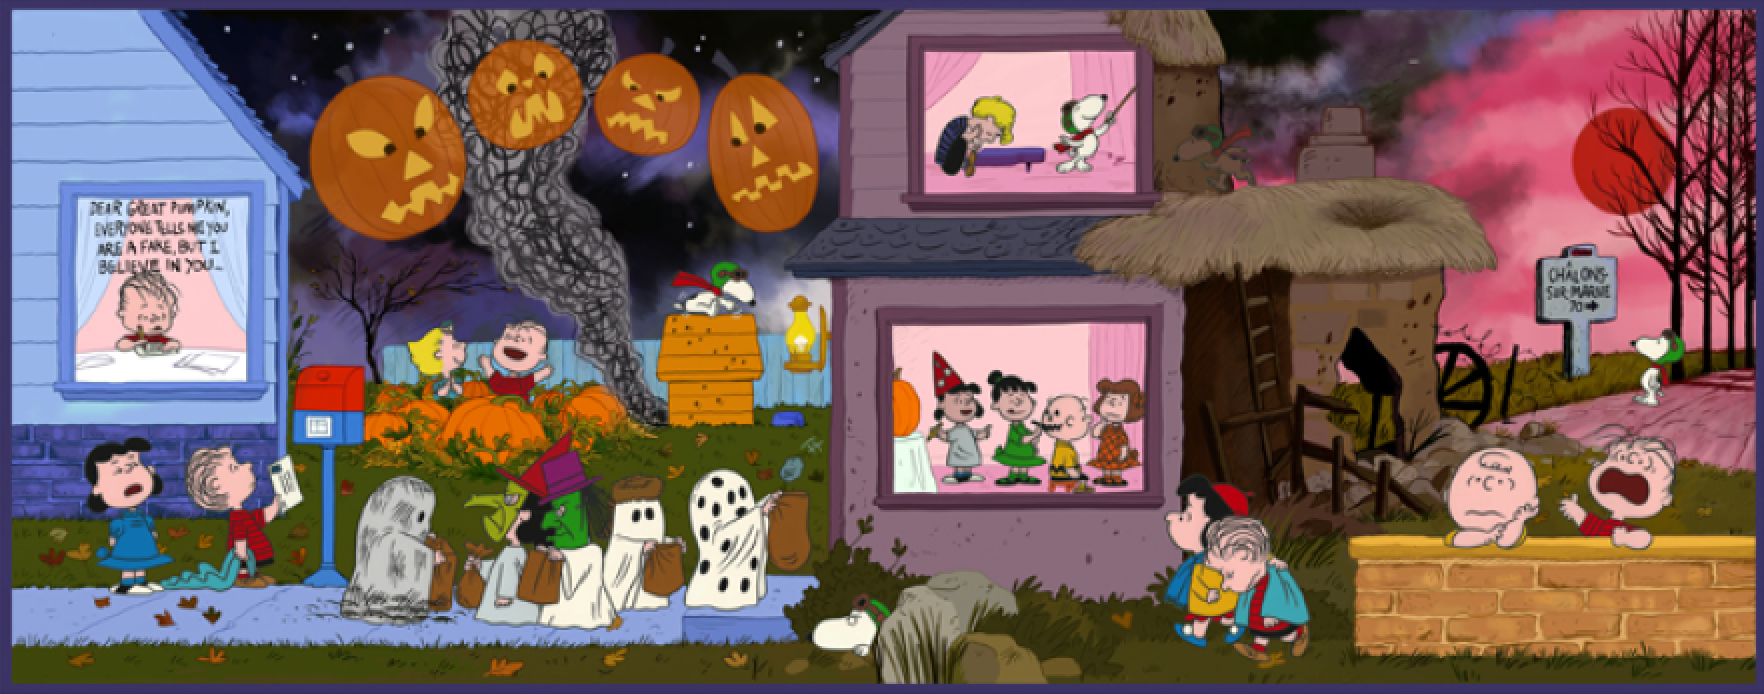 a night to believe its the great pumpkin charlie brown